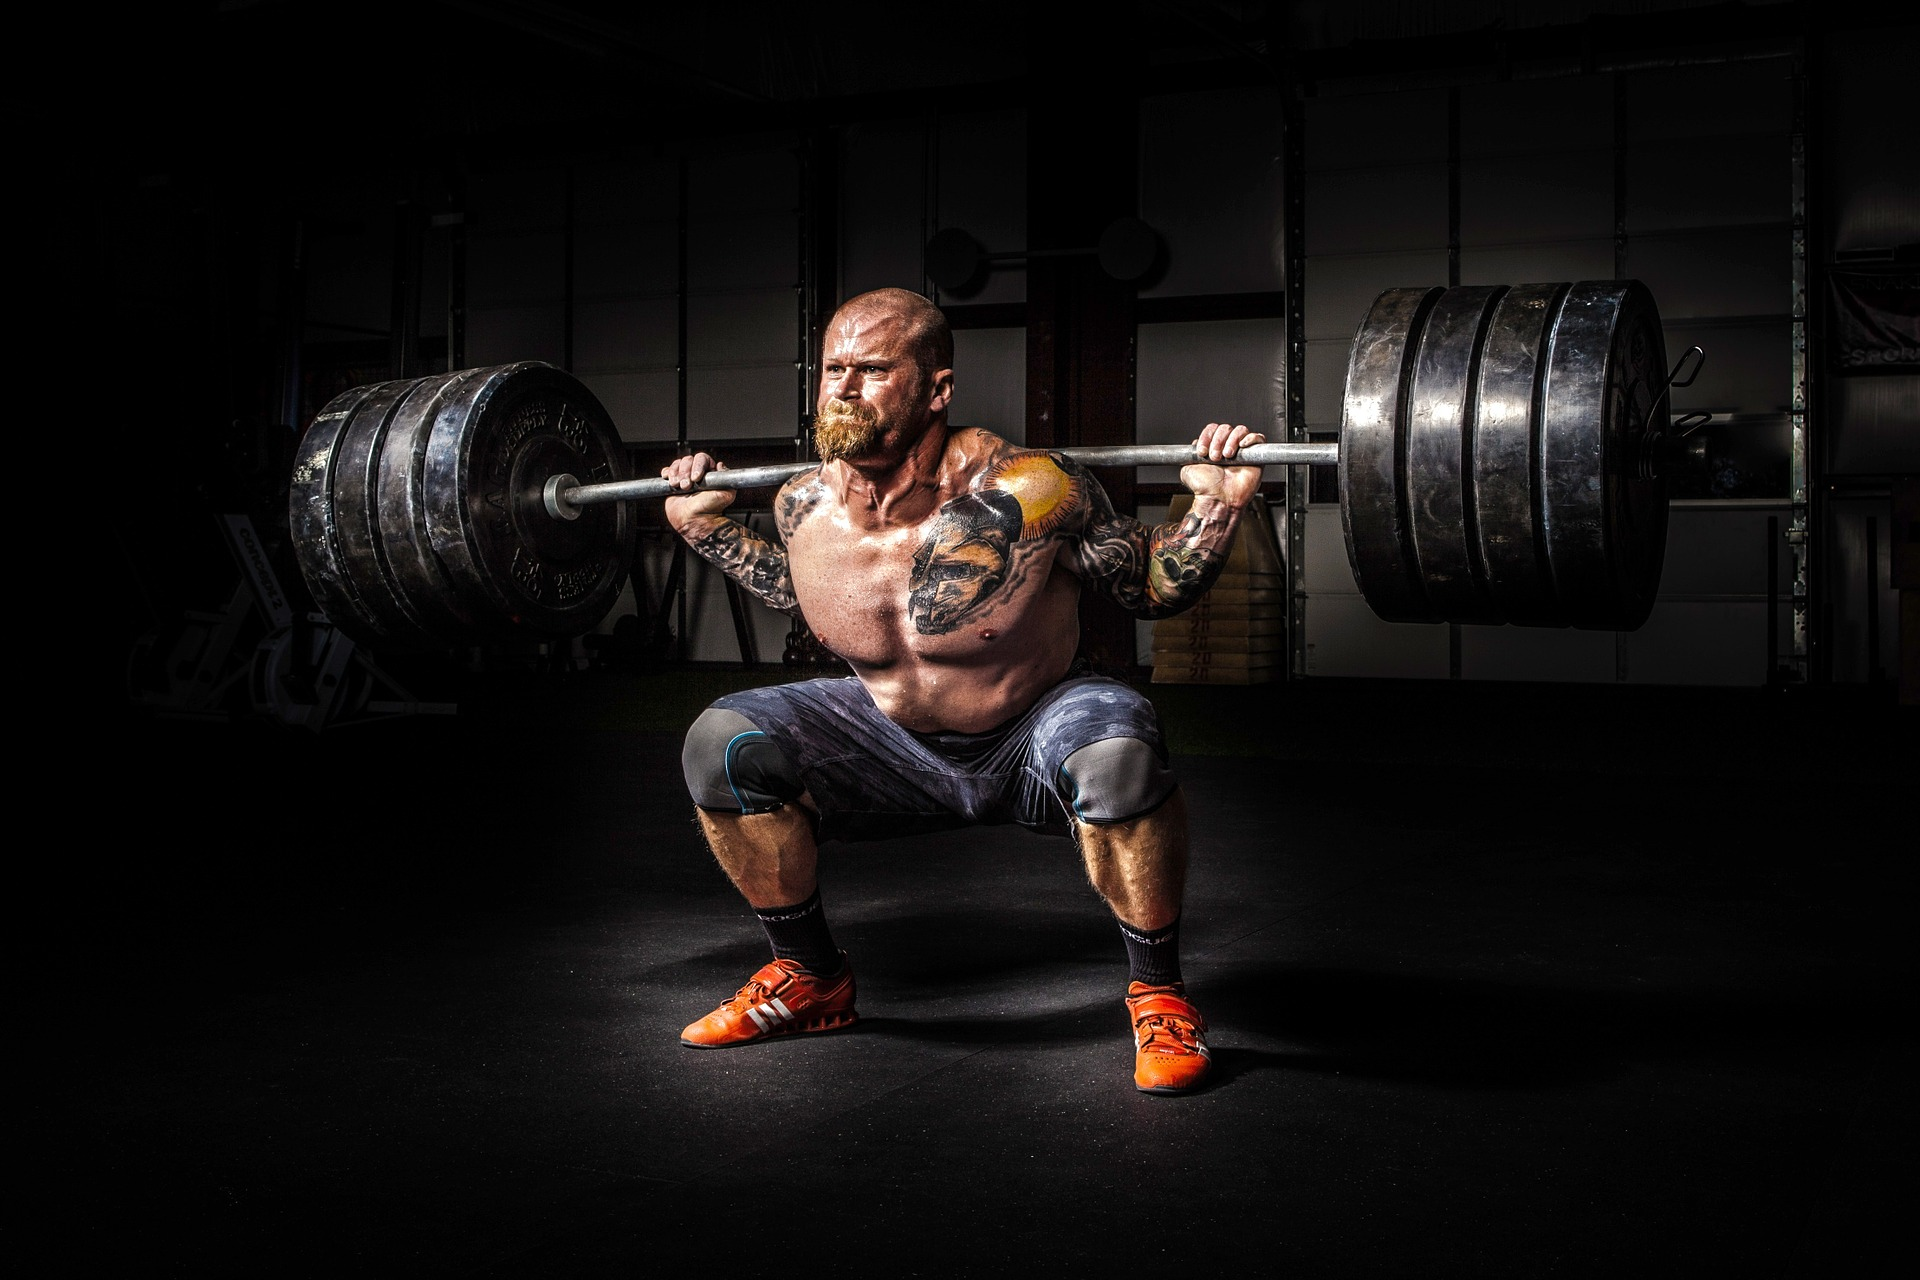 Why Are Steroids So Dangerous?